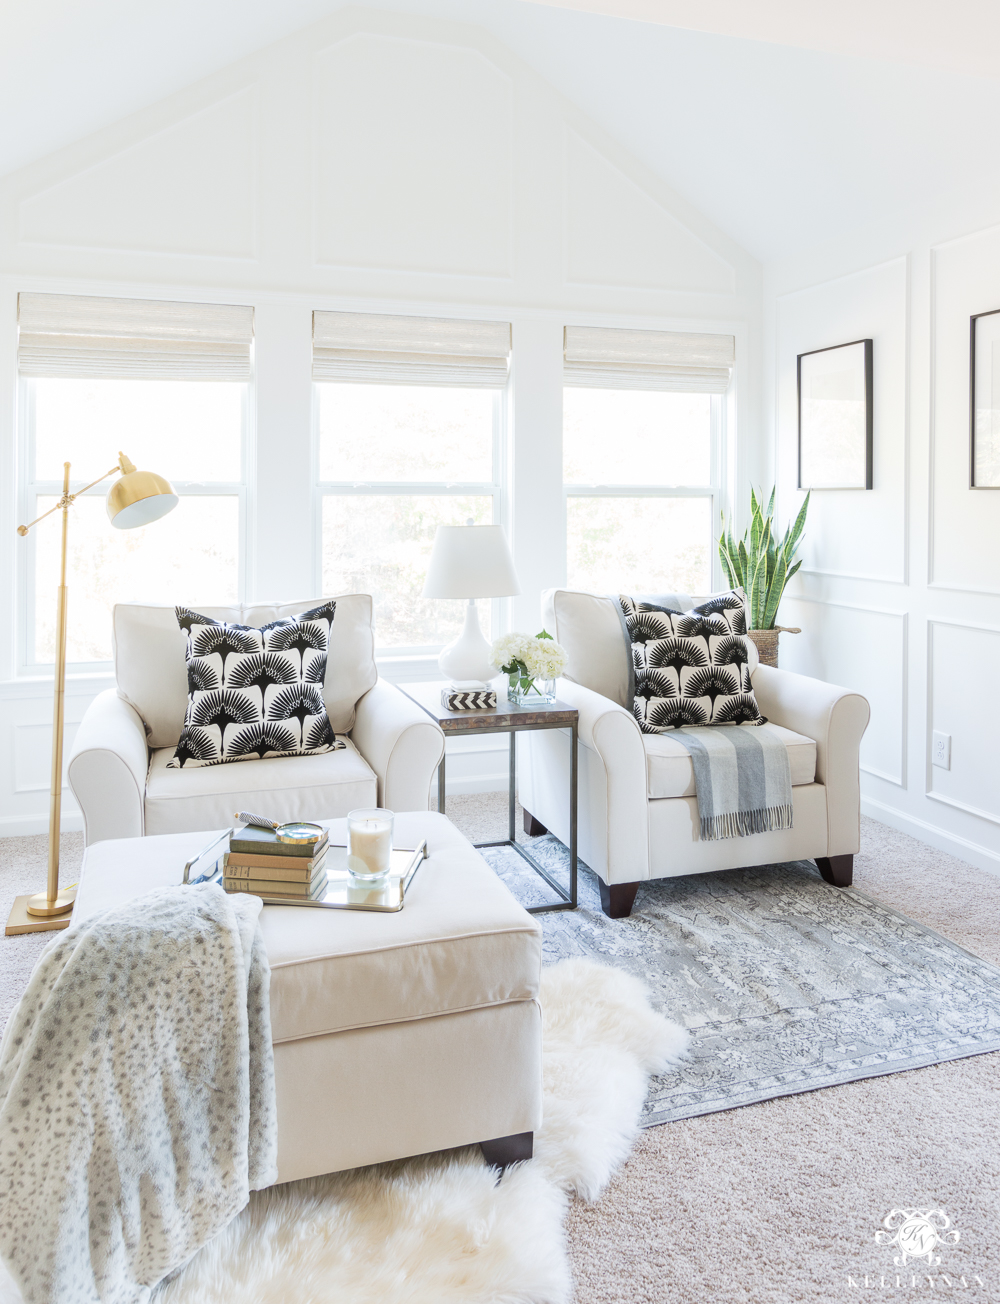 Transitional modern bedroom sitting nook with white chairs